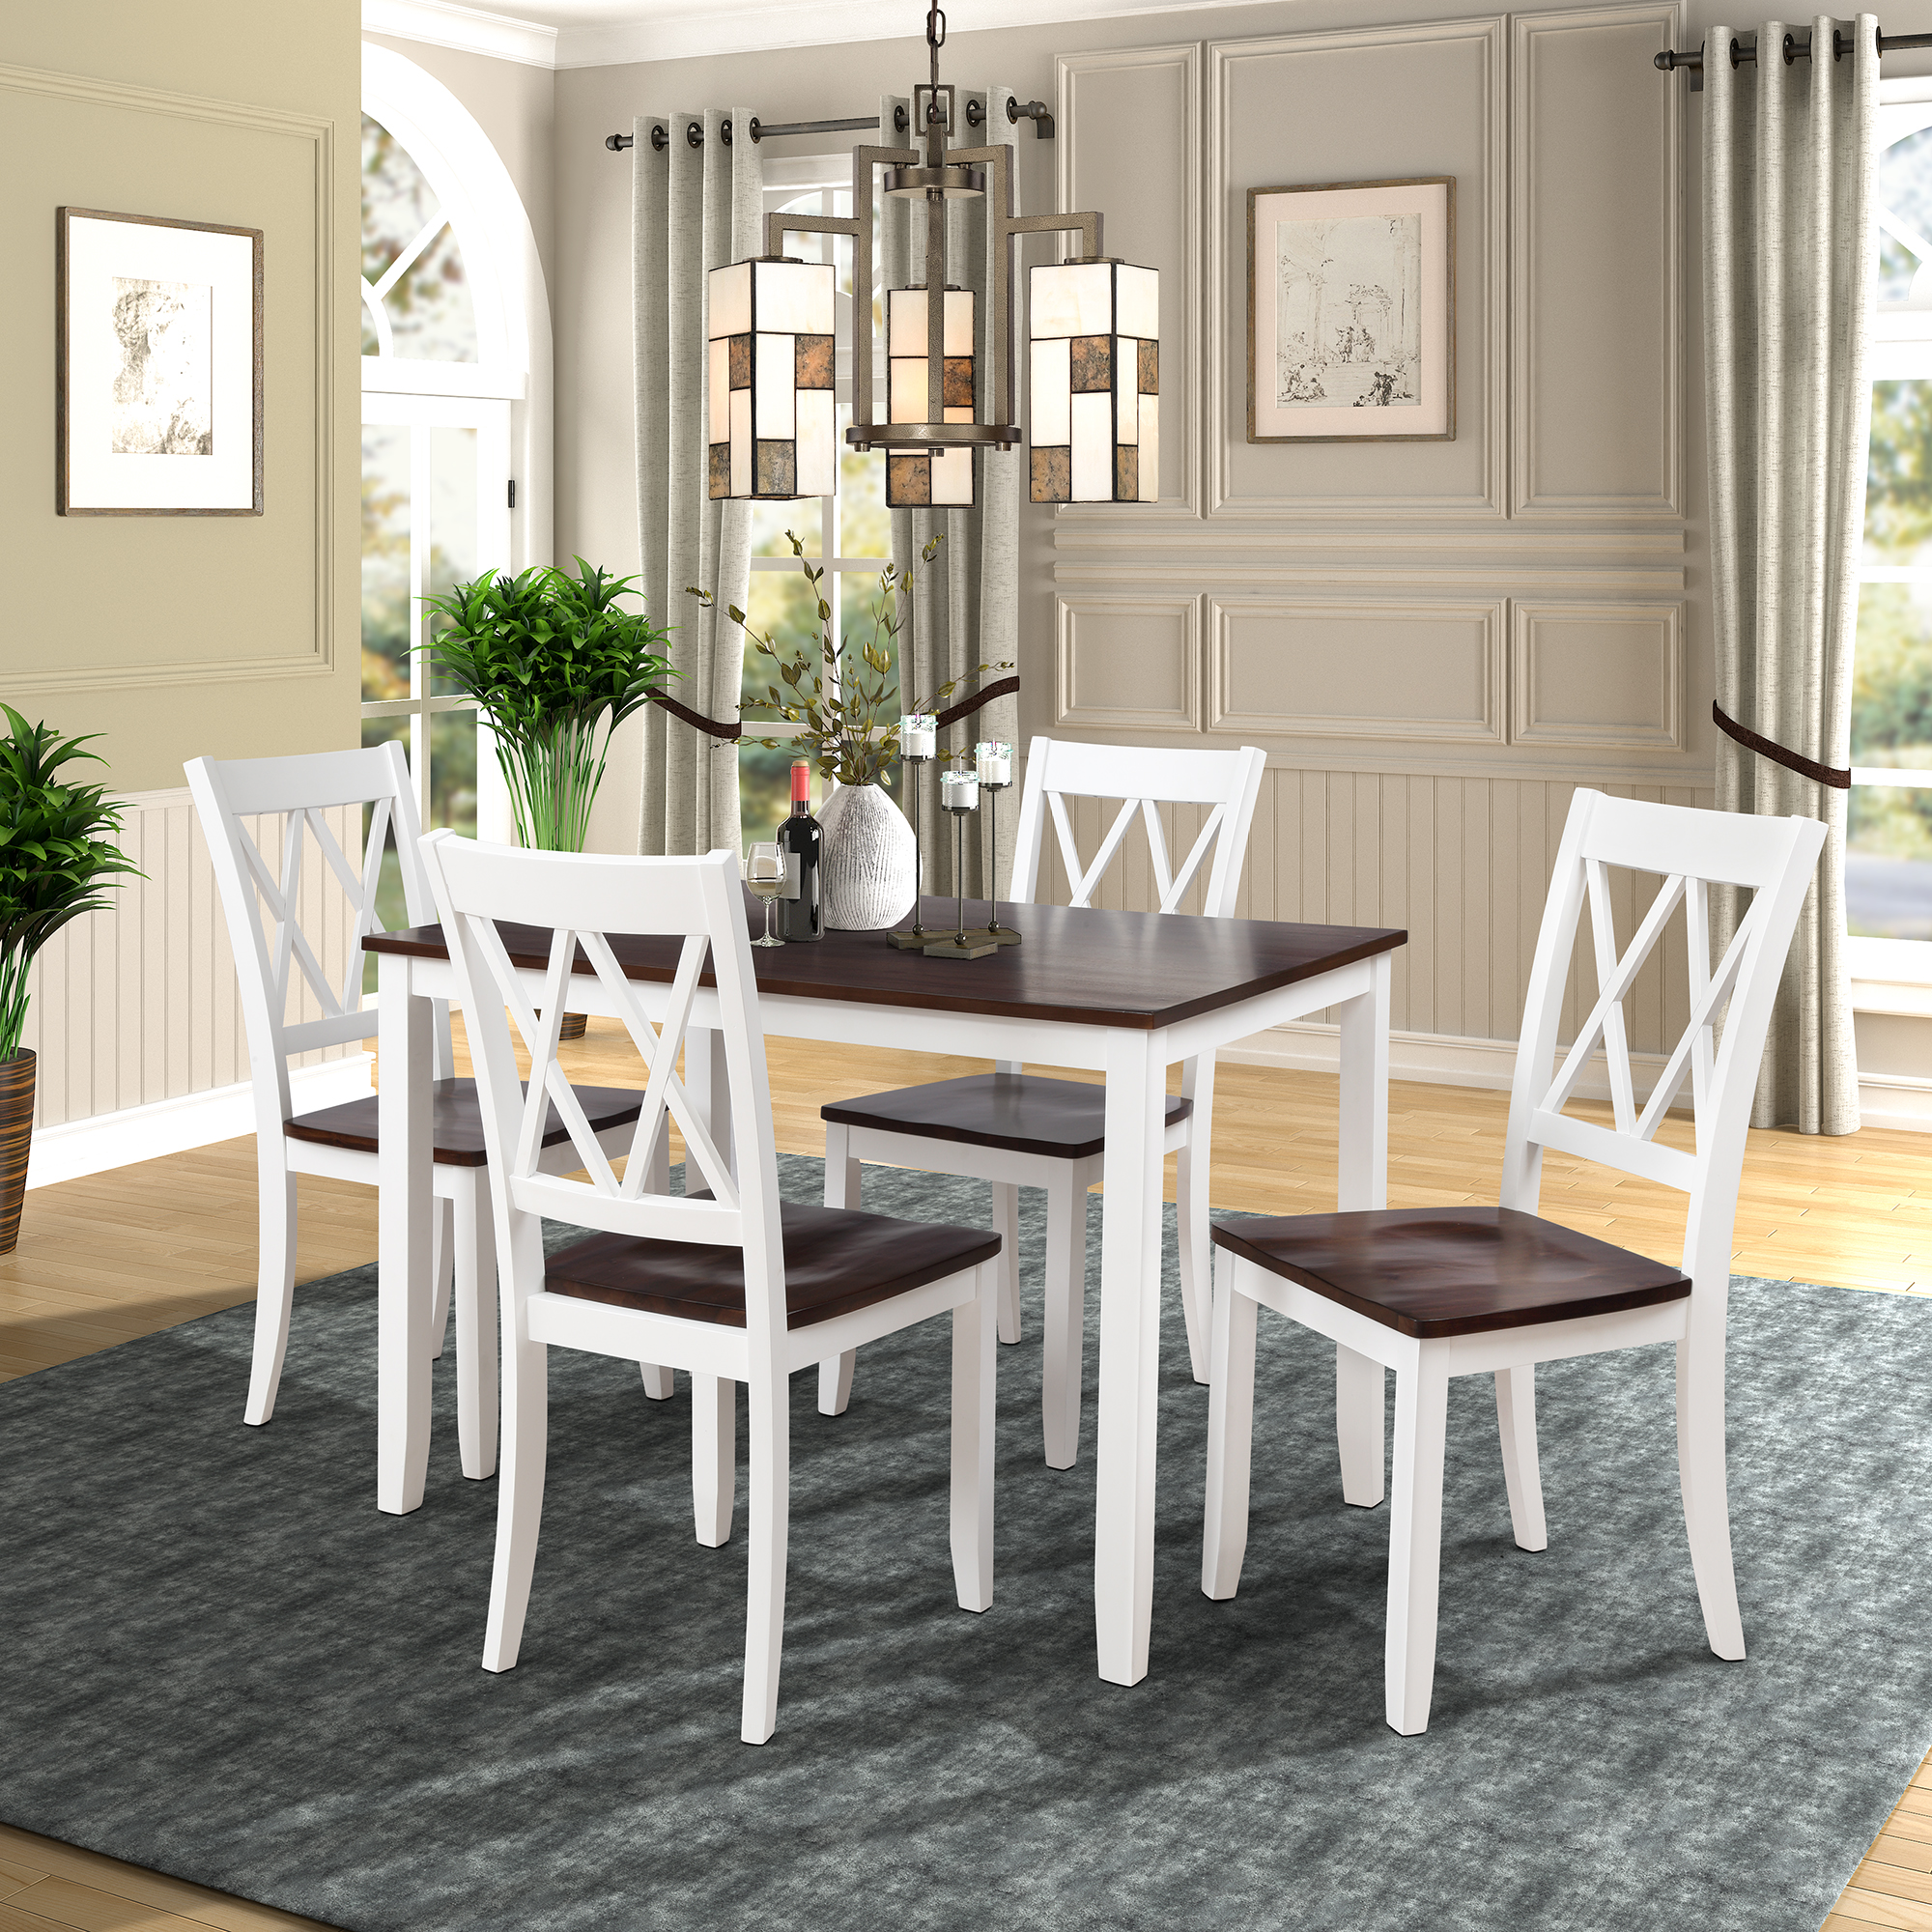 5 Piece Kitchen Table Set Modern Dining Table Sets With Dining Chairs For 4 Heavy Duty Wooden Rectangular Dining Room Table Set With White Finish For Home Kitchen Living Room Restaurant L856